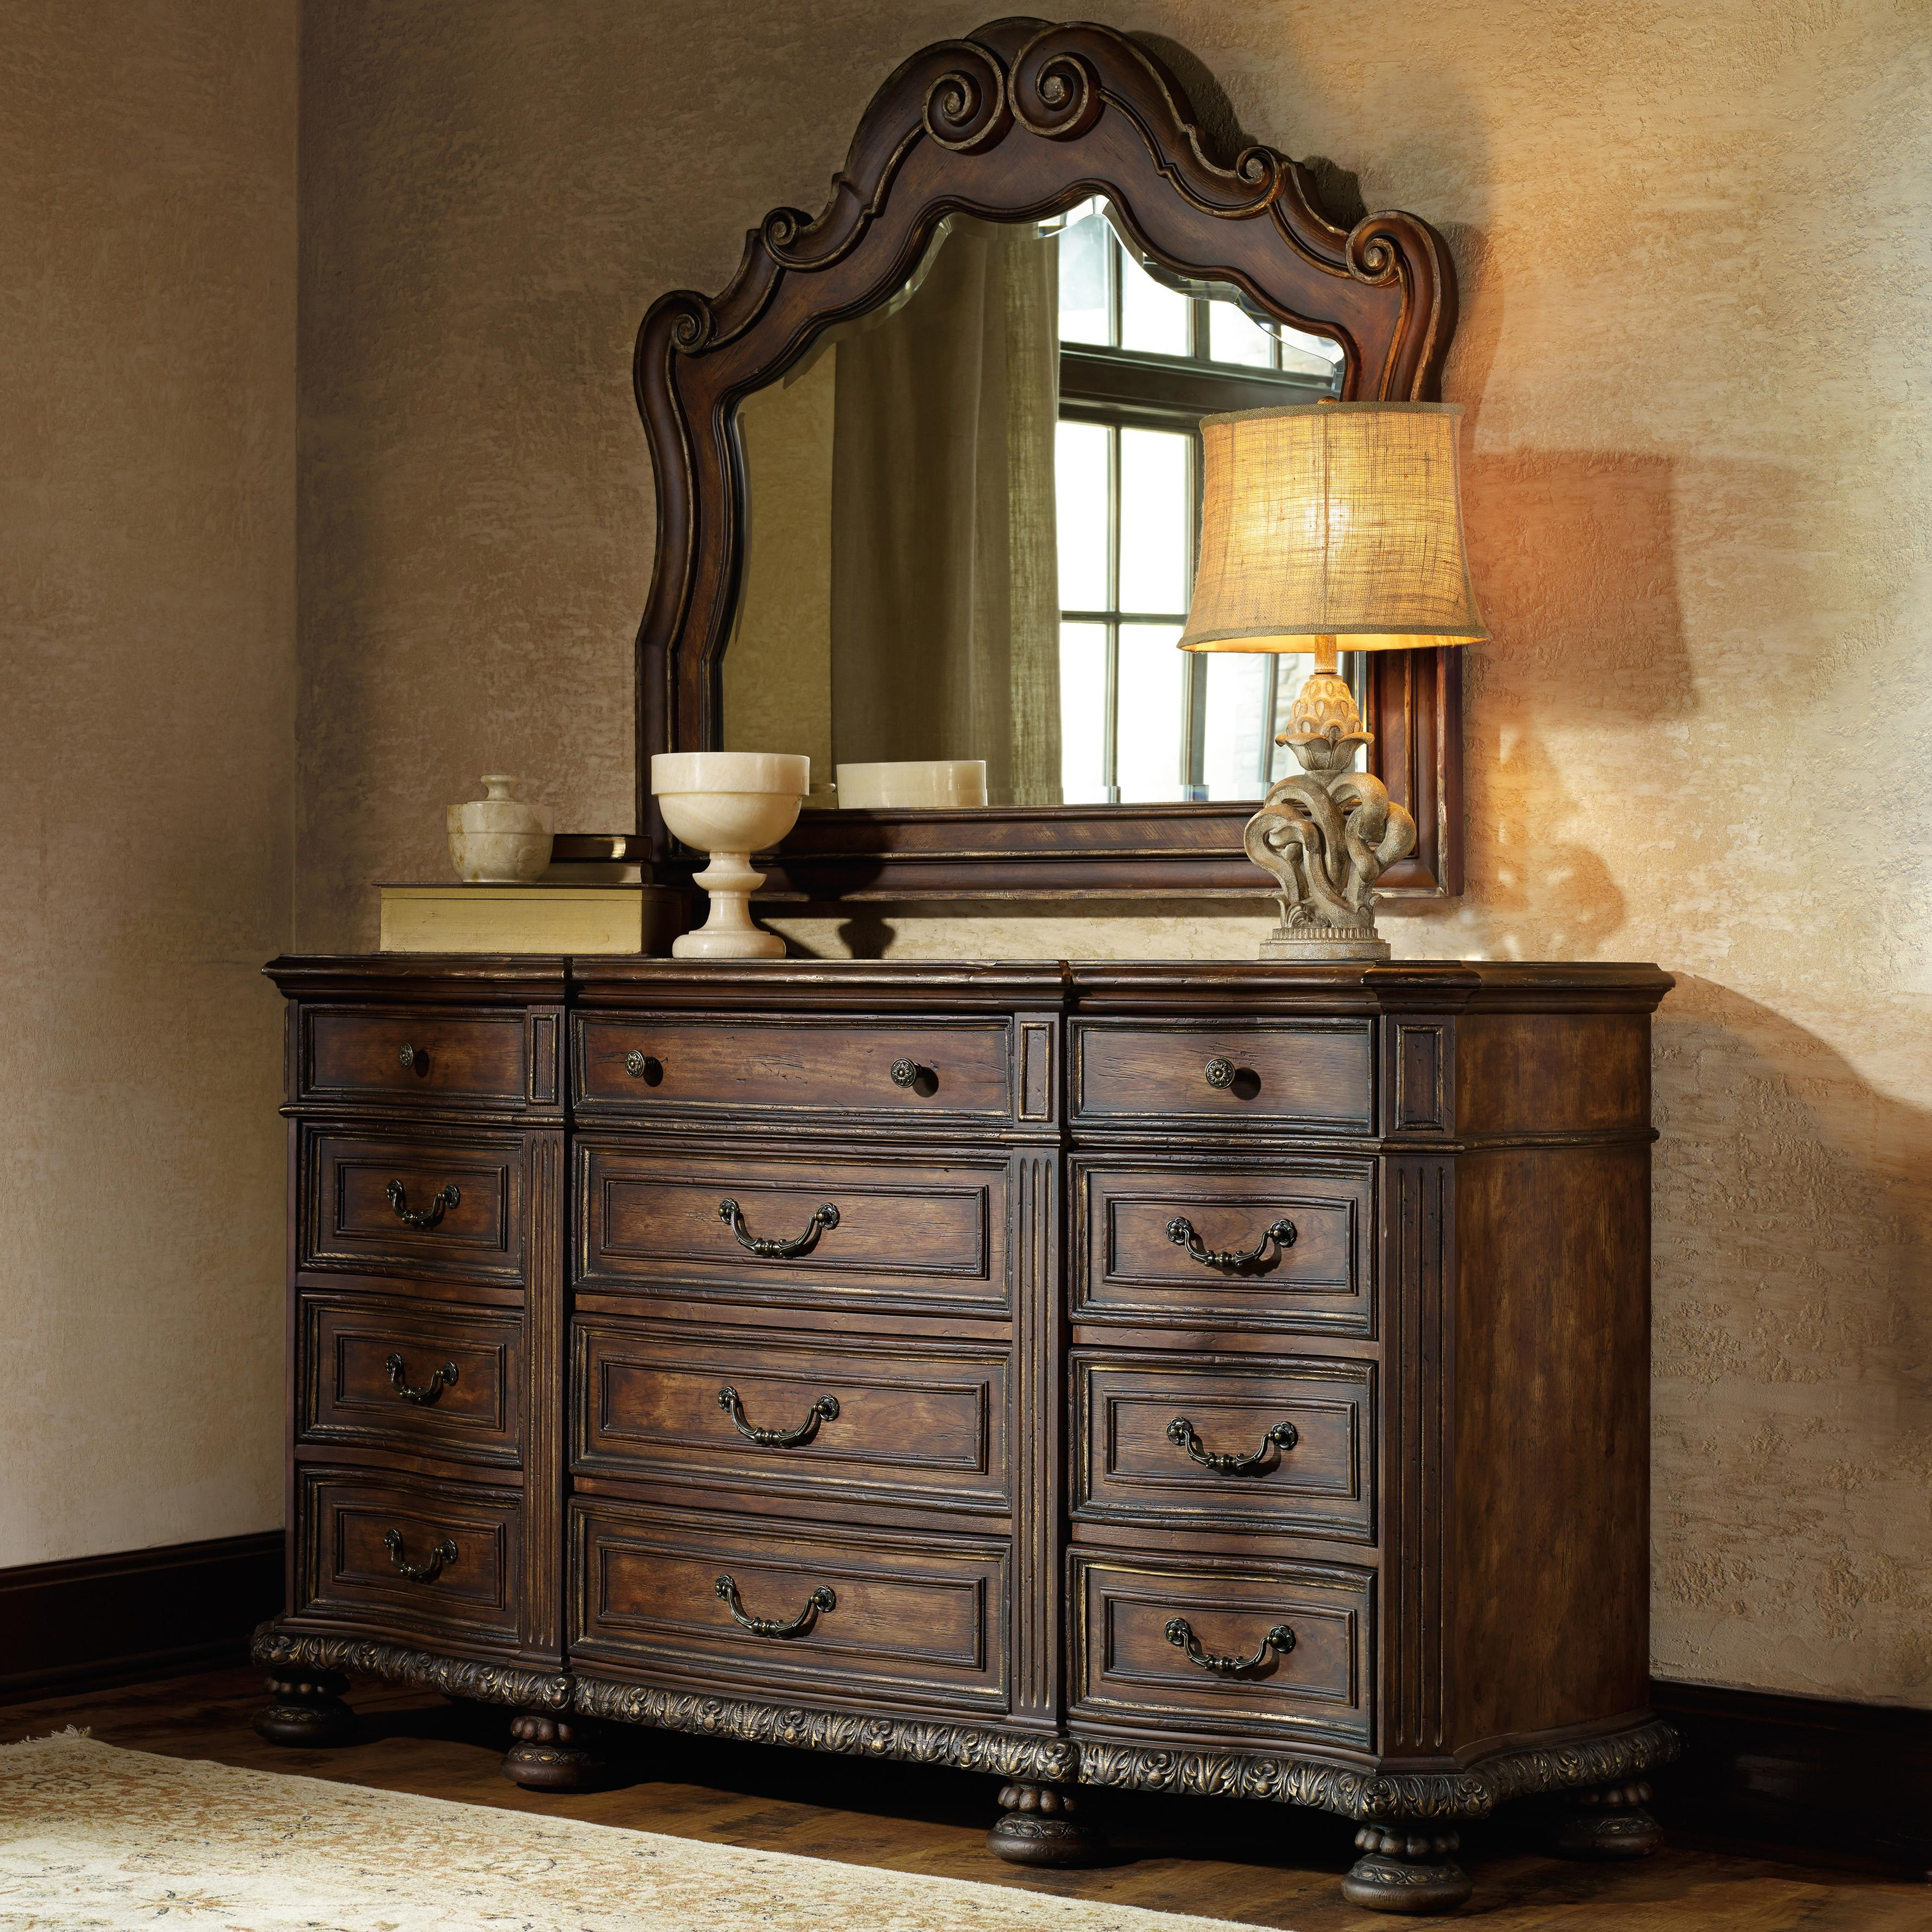 Hooker Furniture Adagio 12 Drawer Dresser with Mirror - Item Number: 5091-90002+8